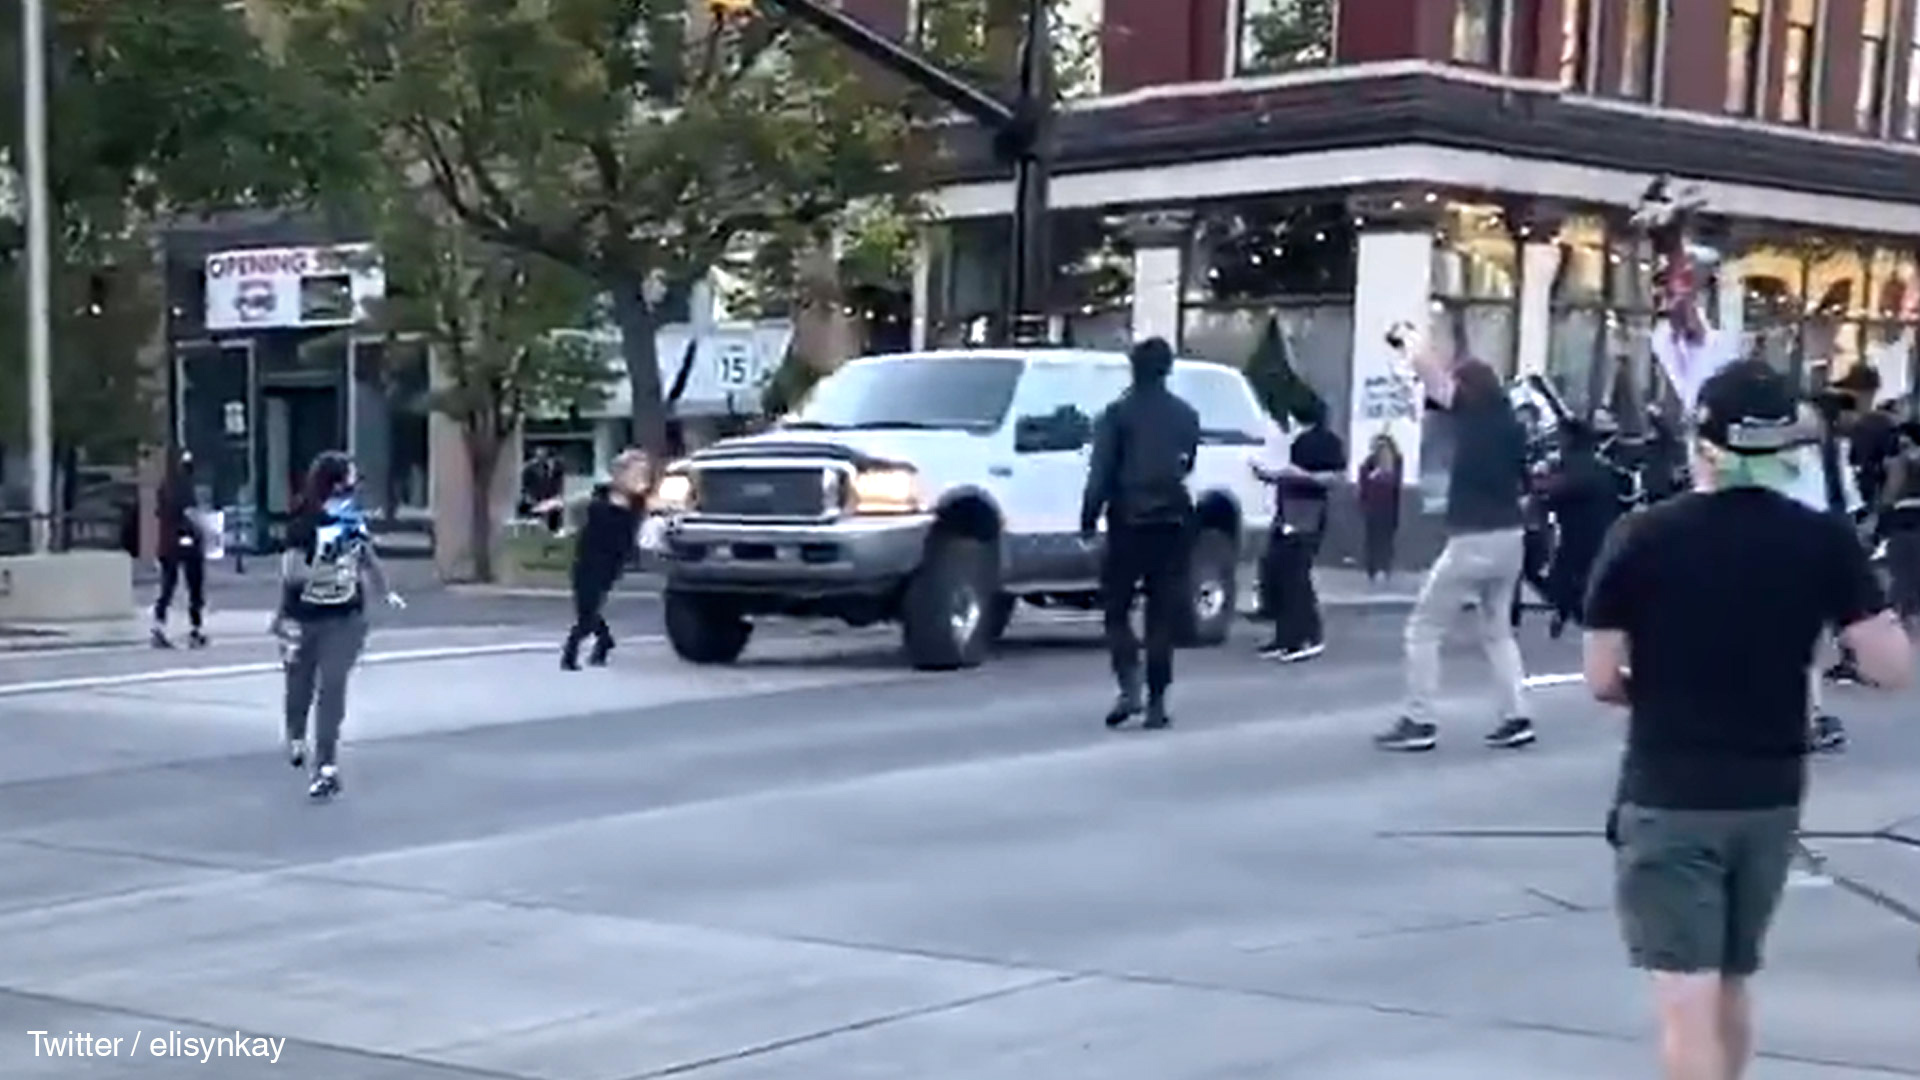 Shooting at Black Lives Matter protest in Provo, Utah